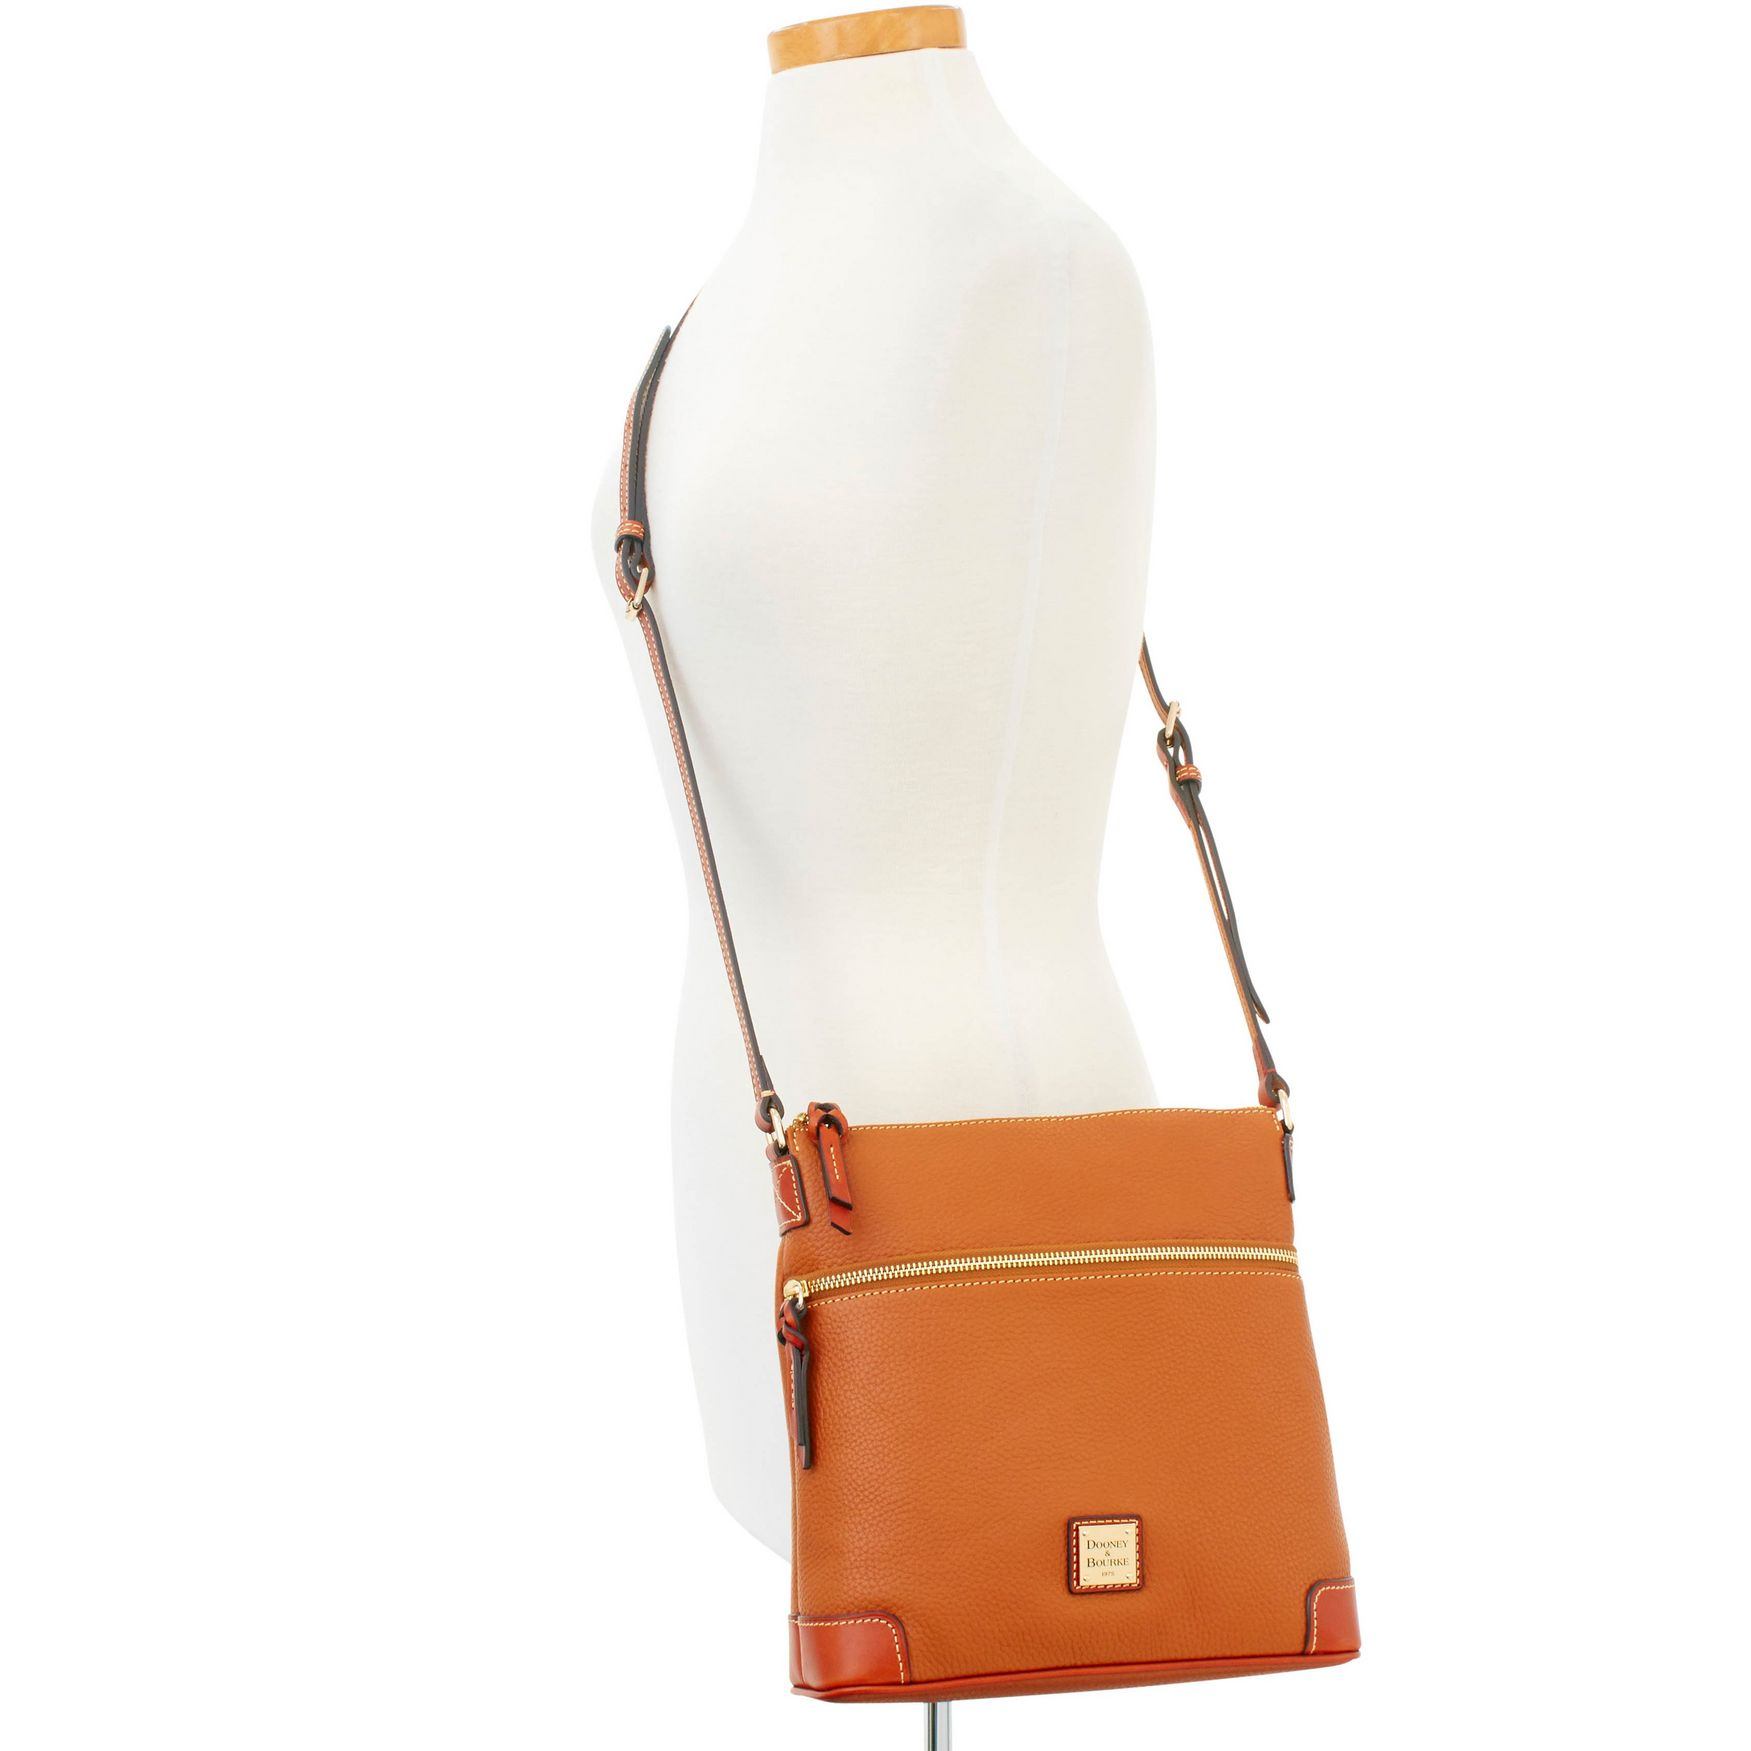 Dooney-amp-Bourke-Pebble-Grain-Crossbody-Medium-Wristlet-Shoulder-Bag thumbnail 14